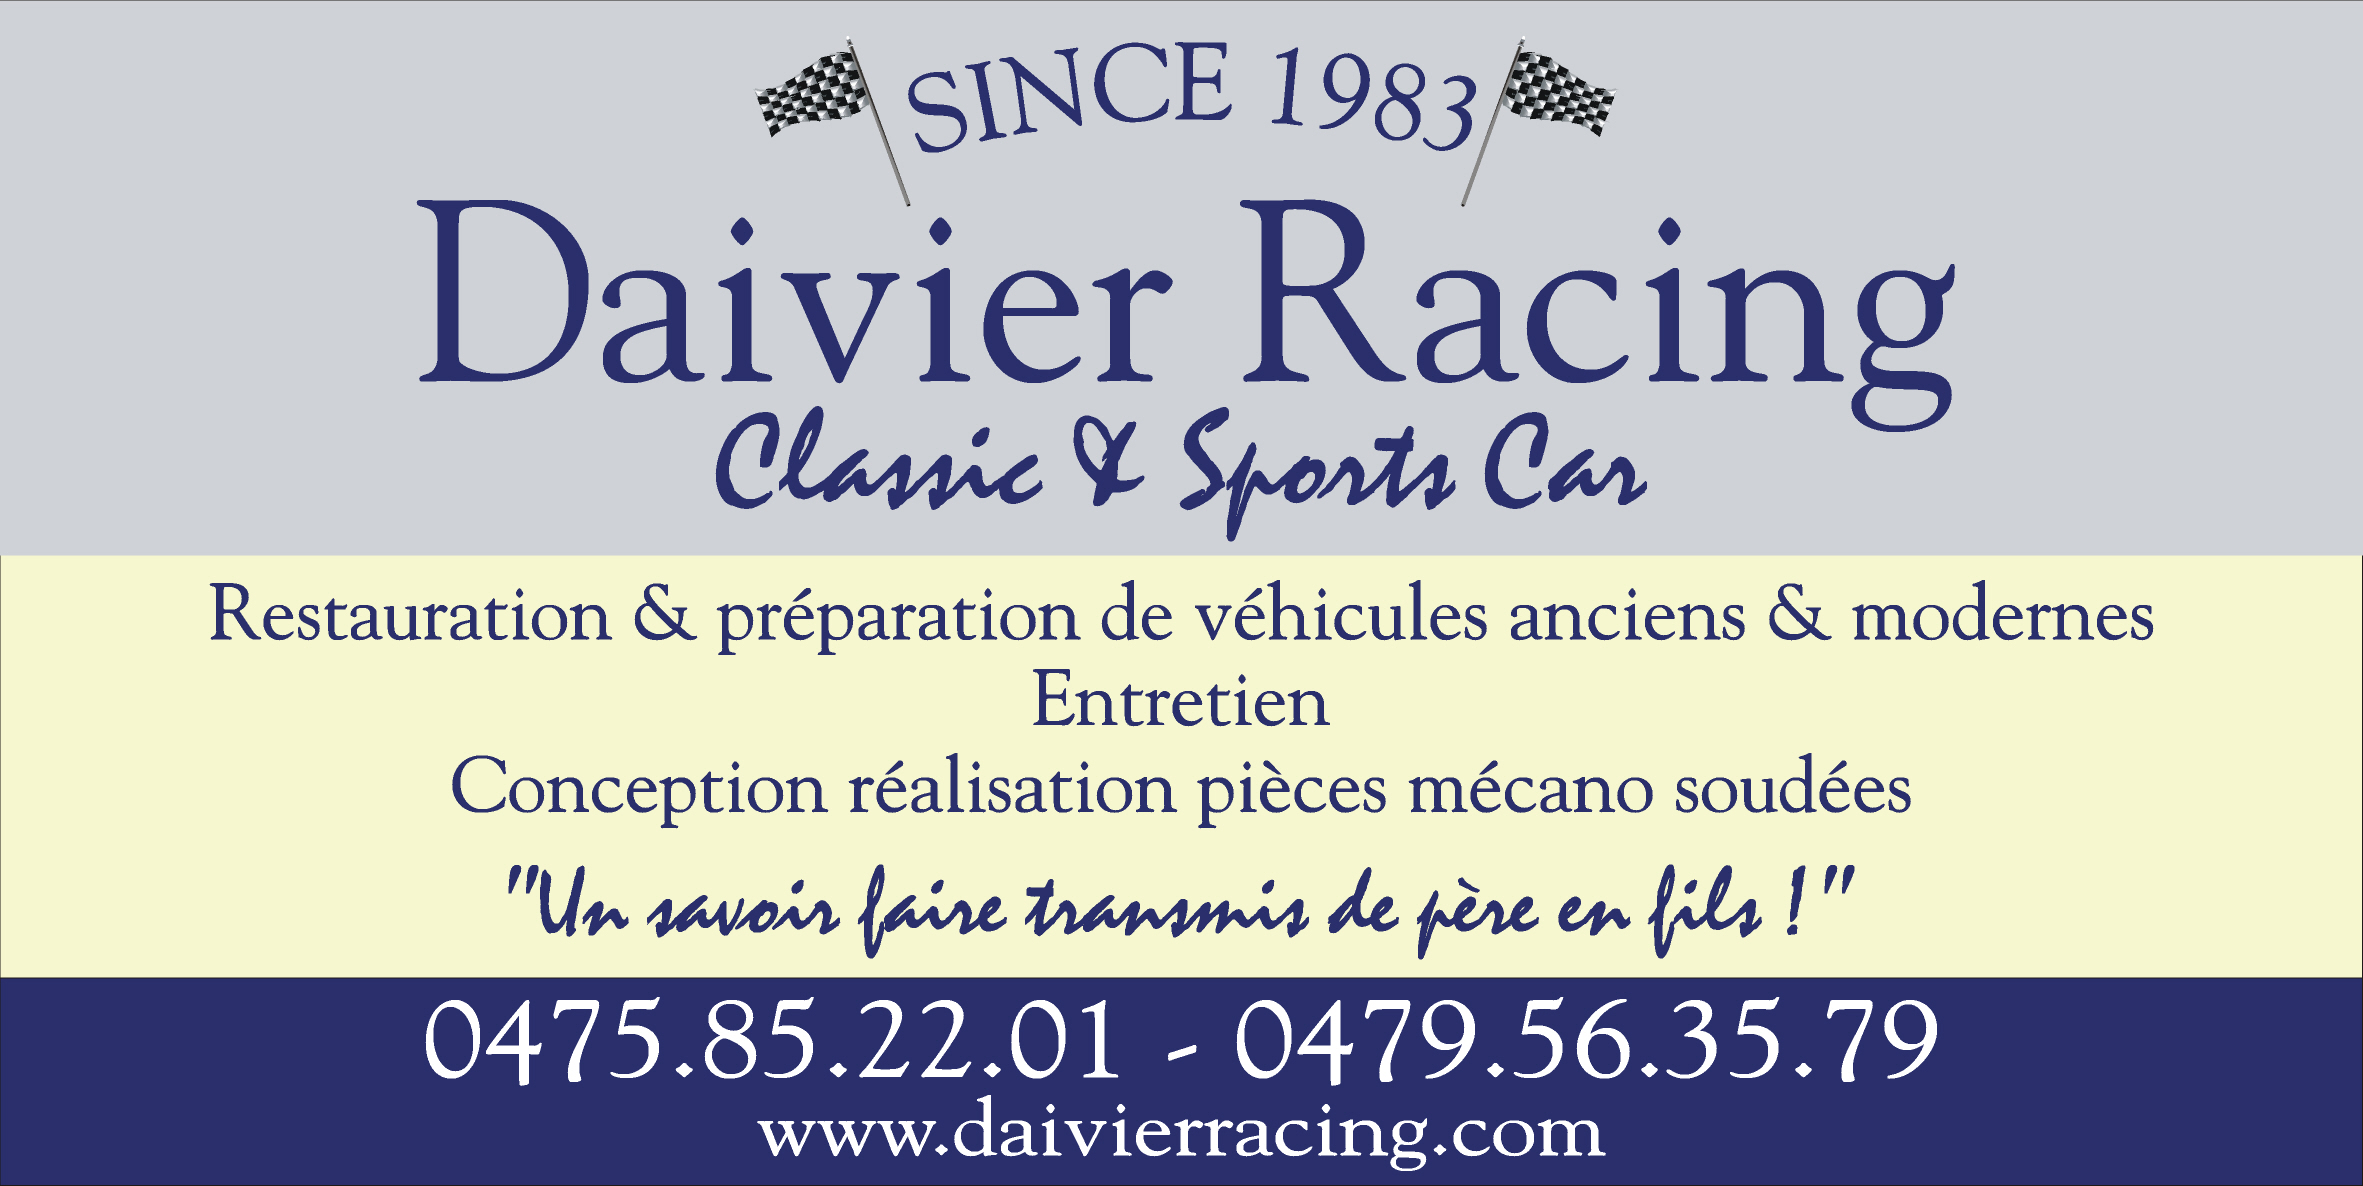 Daivier Racing